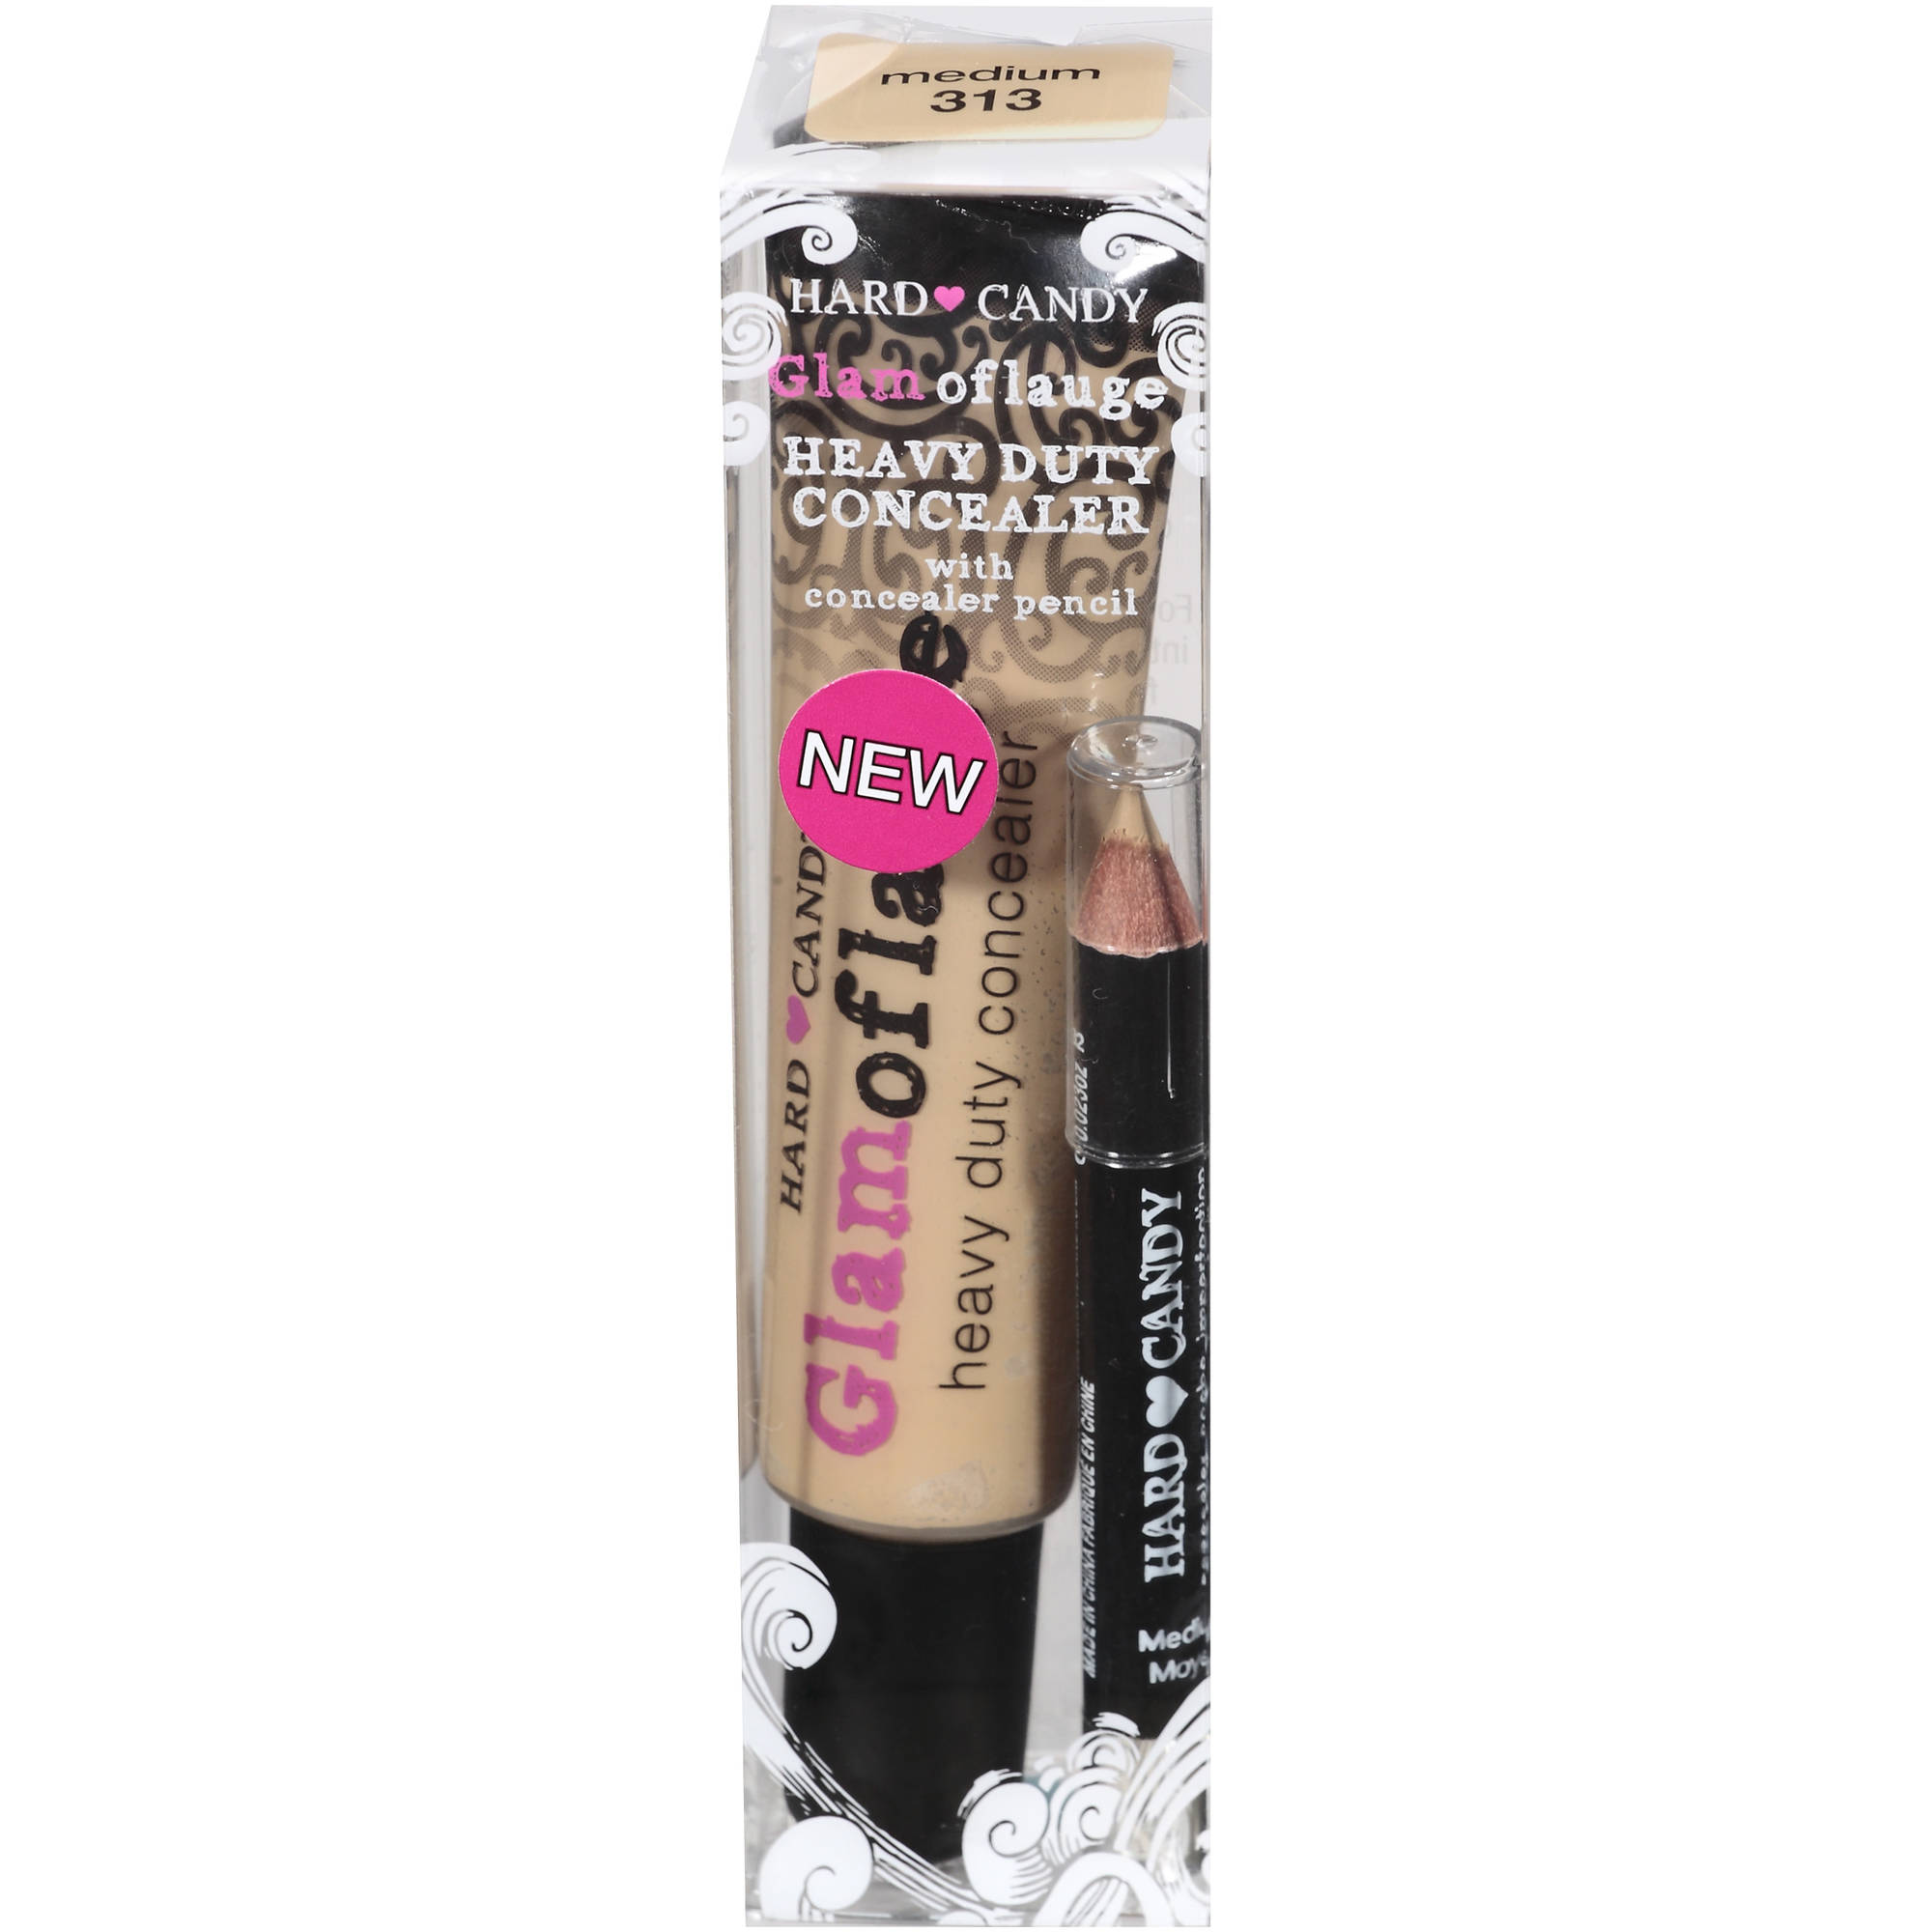 Hard Candy Glamoflauge Concealer, 0313 Medium, 0.71 oz